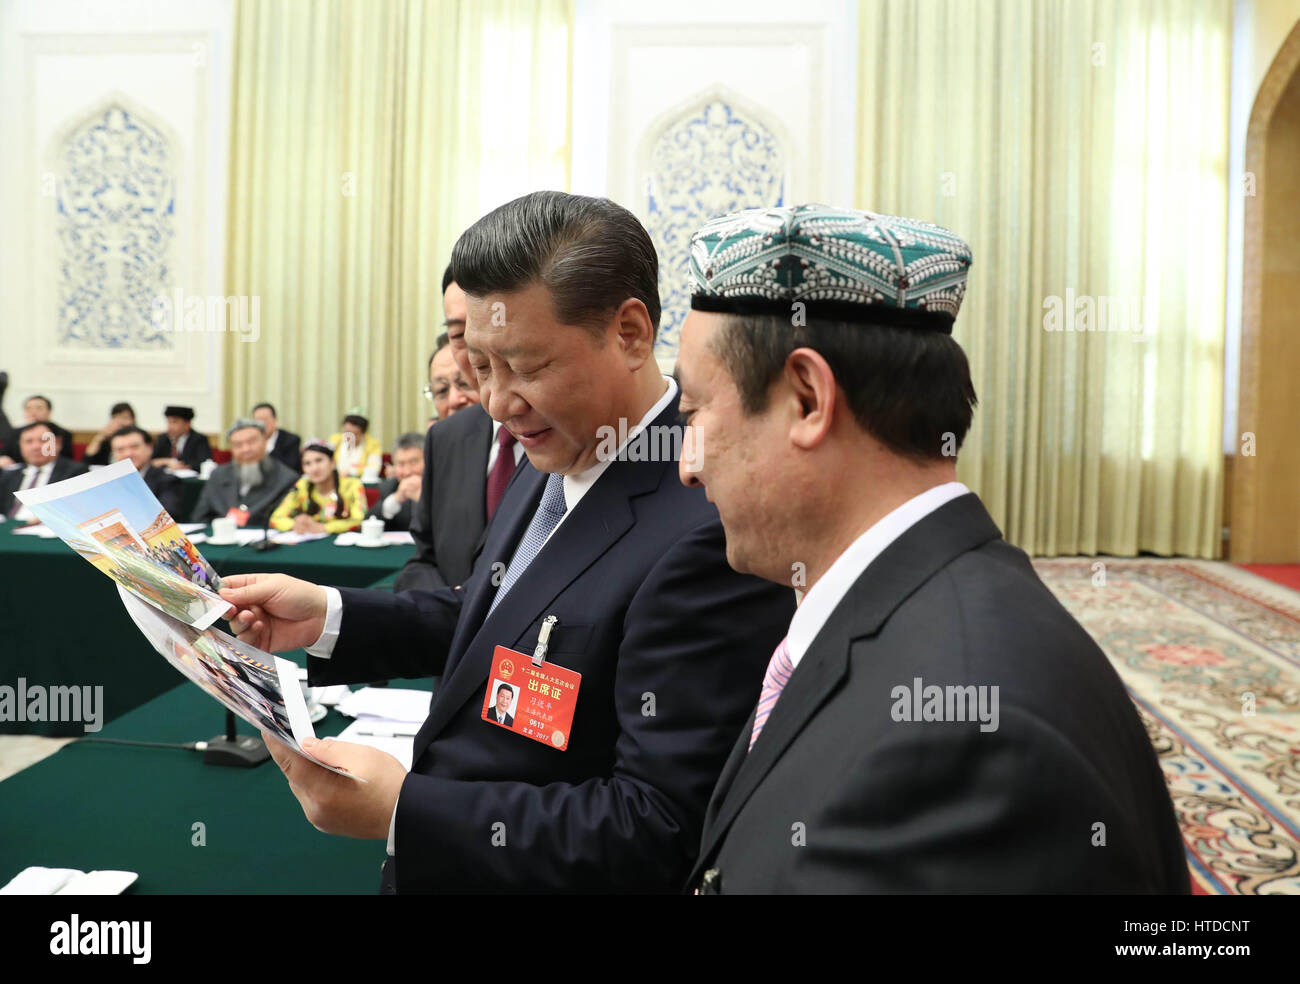 Beijing, China. 10th Mar, 2017. Chinese President Xi Jinping looks at photos of the family of Kurban Tulum when - Stock Image